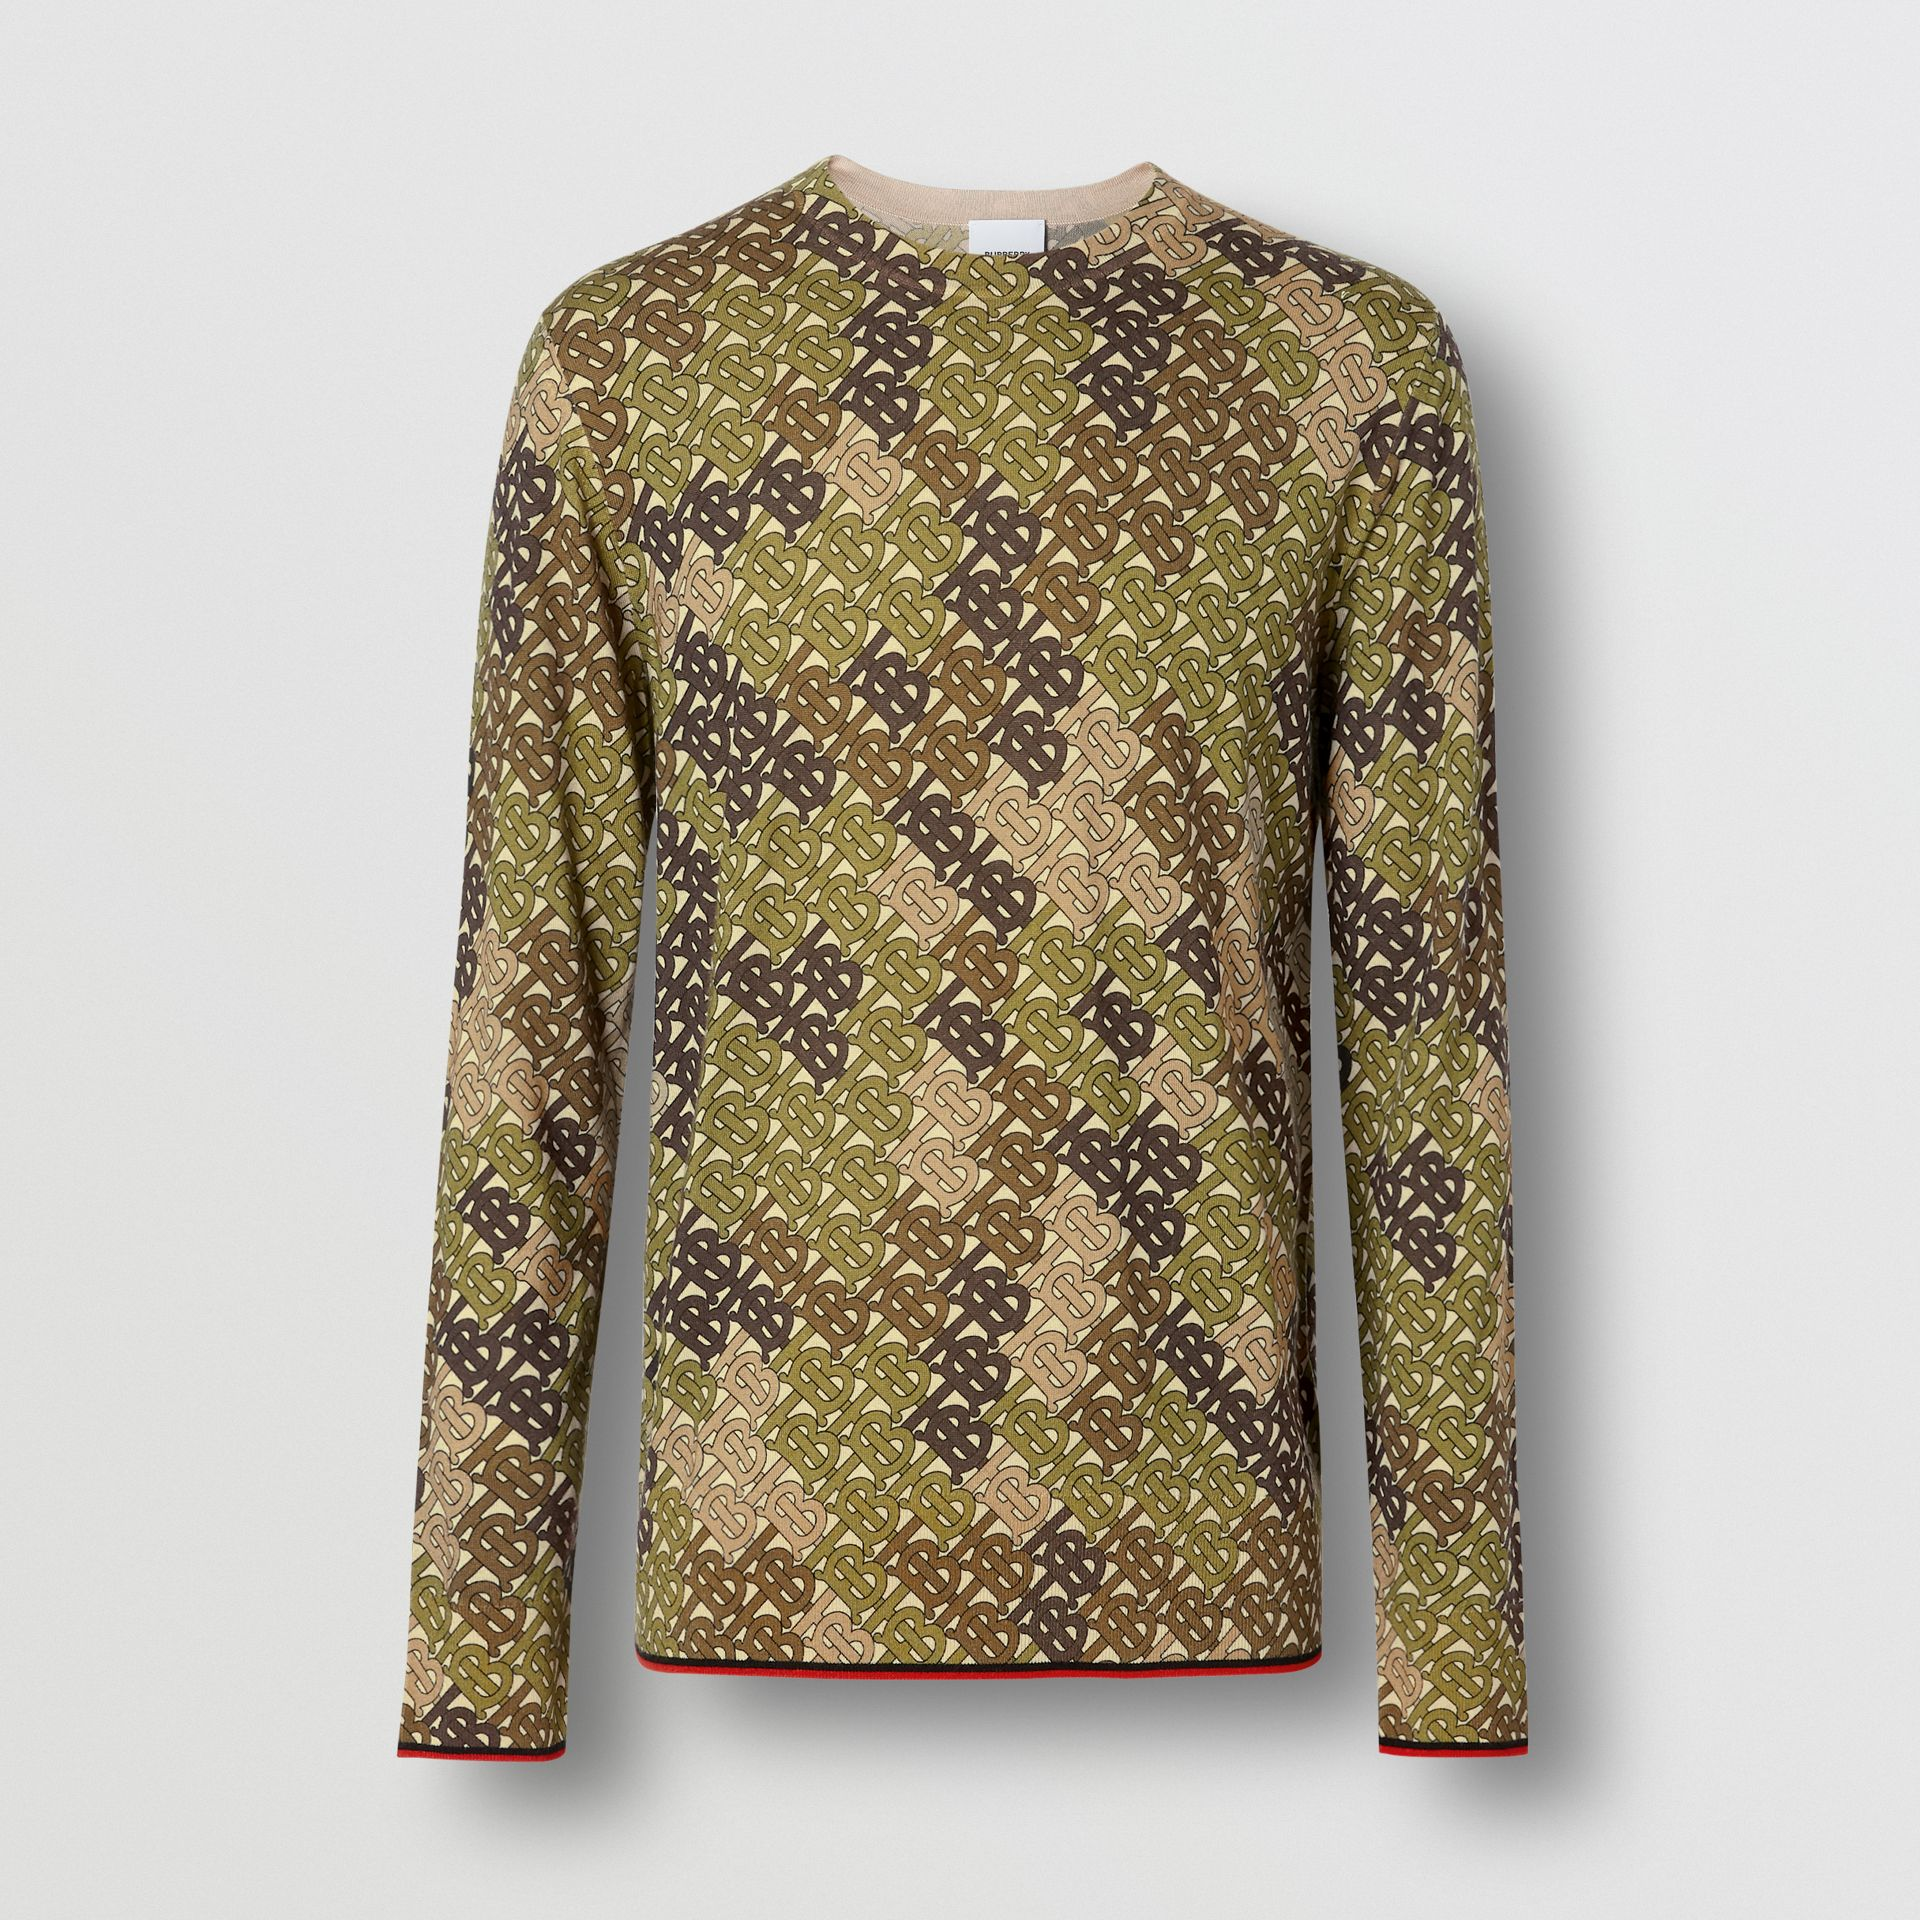 Monogram Print Merino Wool Sweater in Khaki - Men | Burberry United Kingdom - gallery image 3